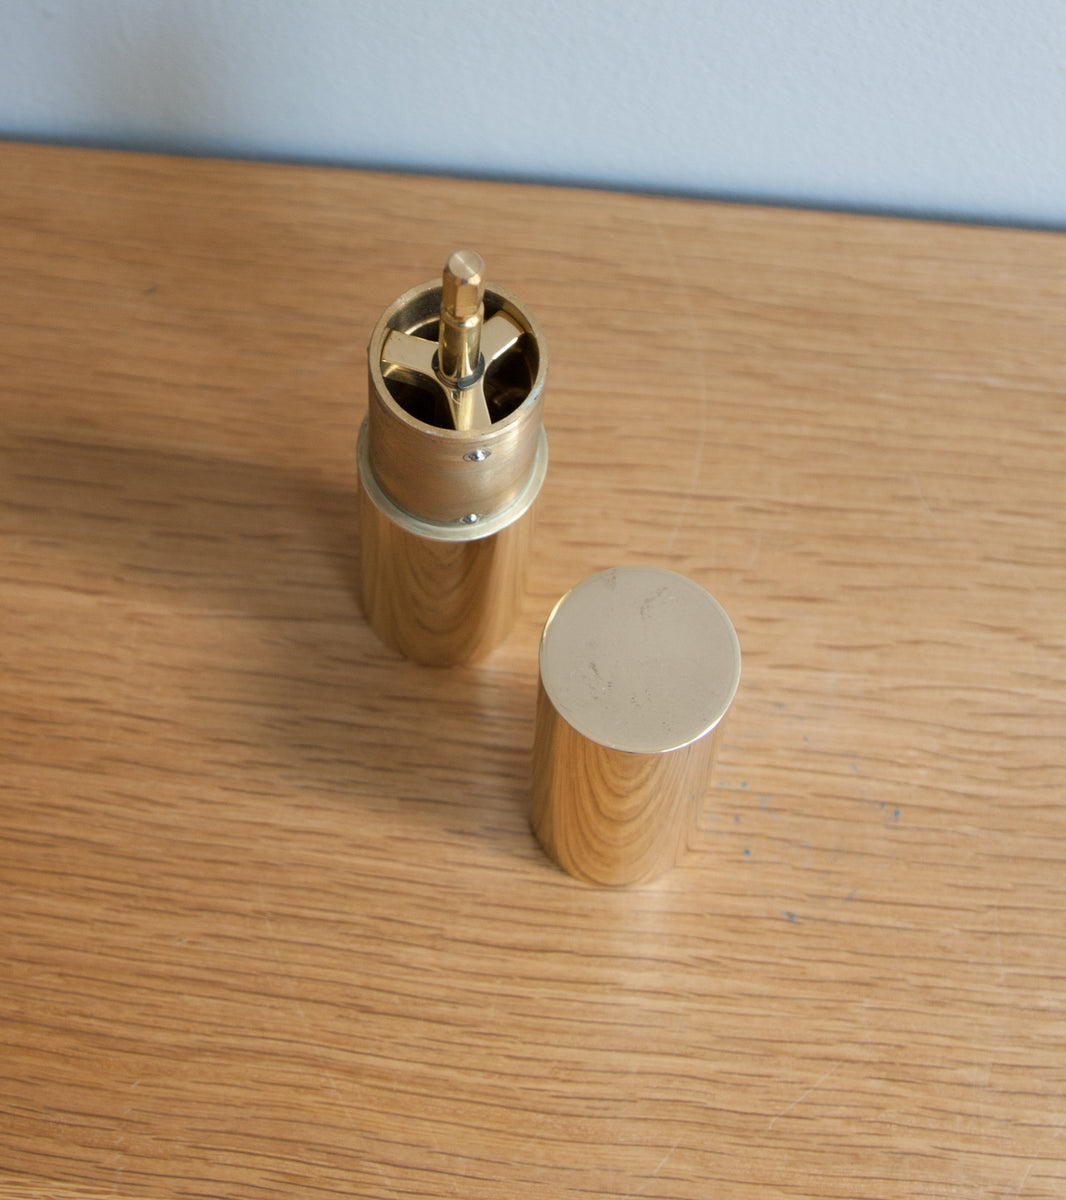 Italic Mill - Solid Polished Brass Michael Anastassiades & Carl Auböck  - Image 10